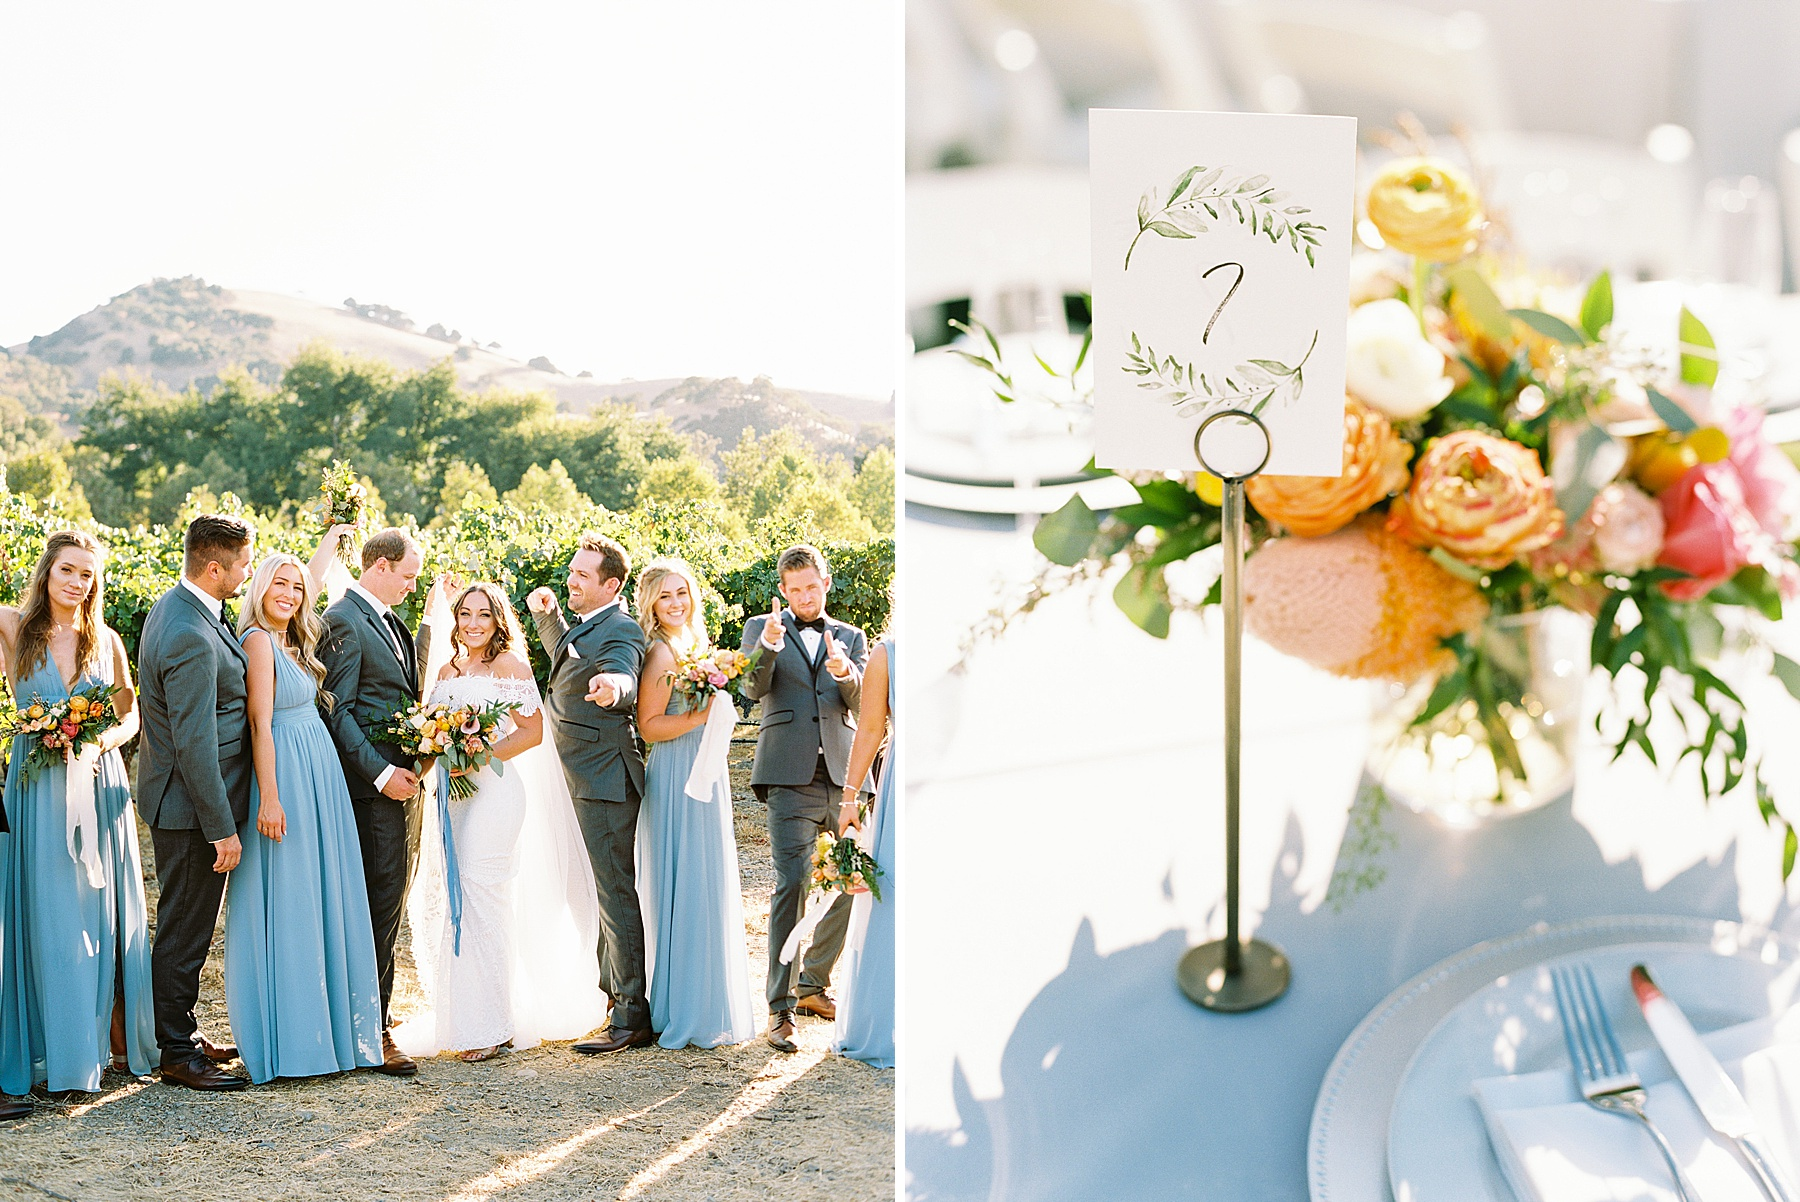 Wente Wedding with A Tropical Color Palette - Ashley & Mike - Featured on Inspired by This - Ashley Baumgartner_0057.jpg